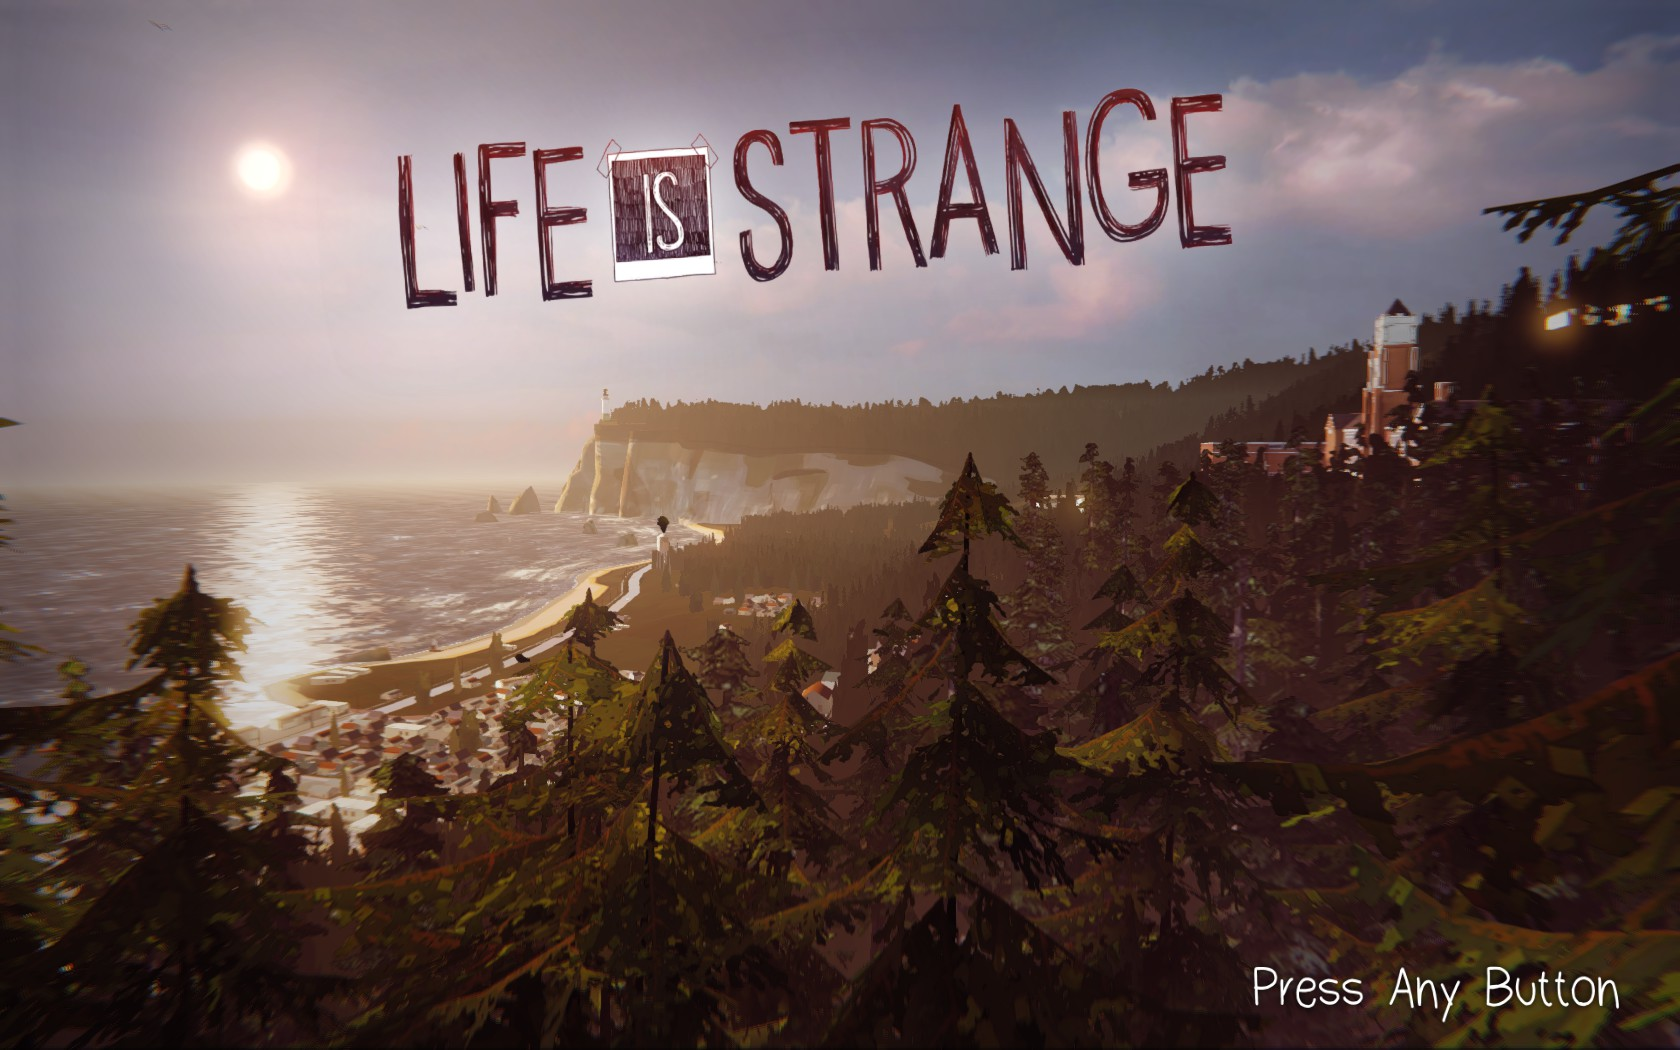 Release of Life is Strange: Episode 2 Delayed - ...Or, maybe not.